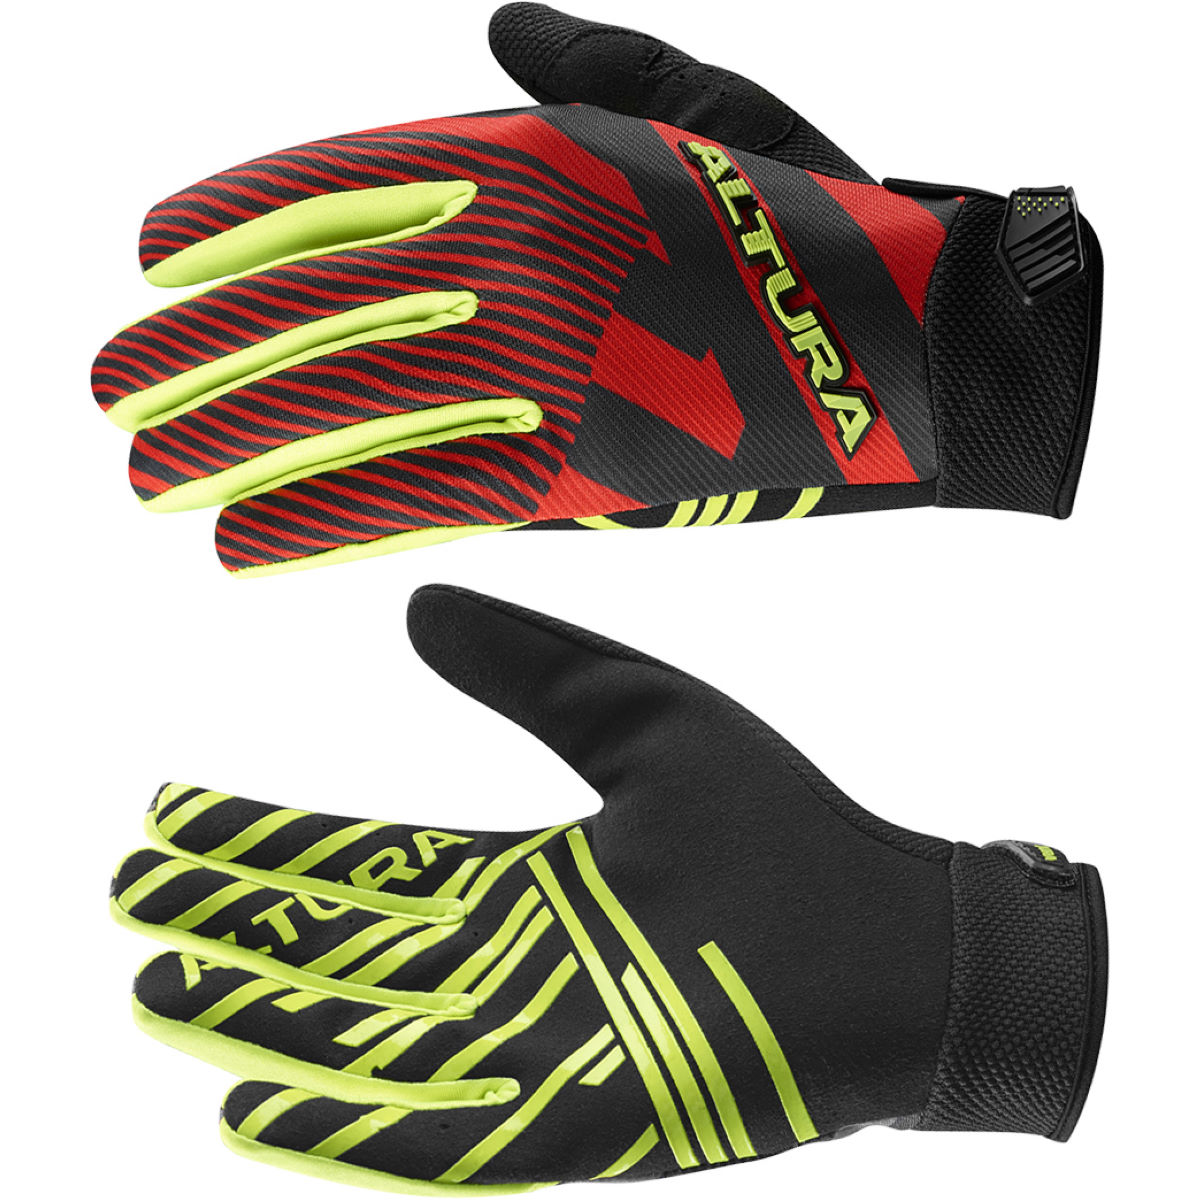 Gants Altura Three60 G2 - S Red - Black Gants